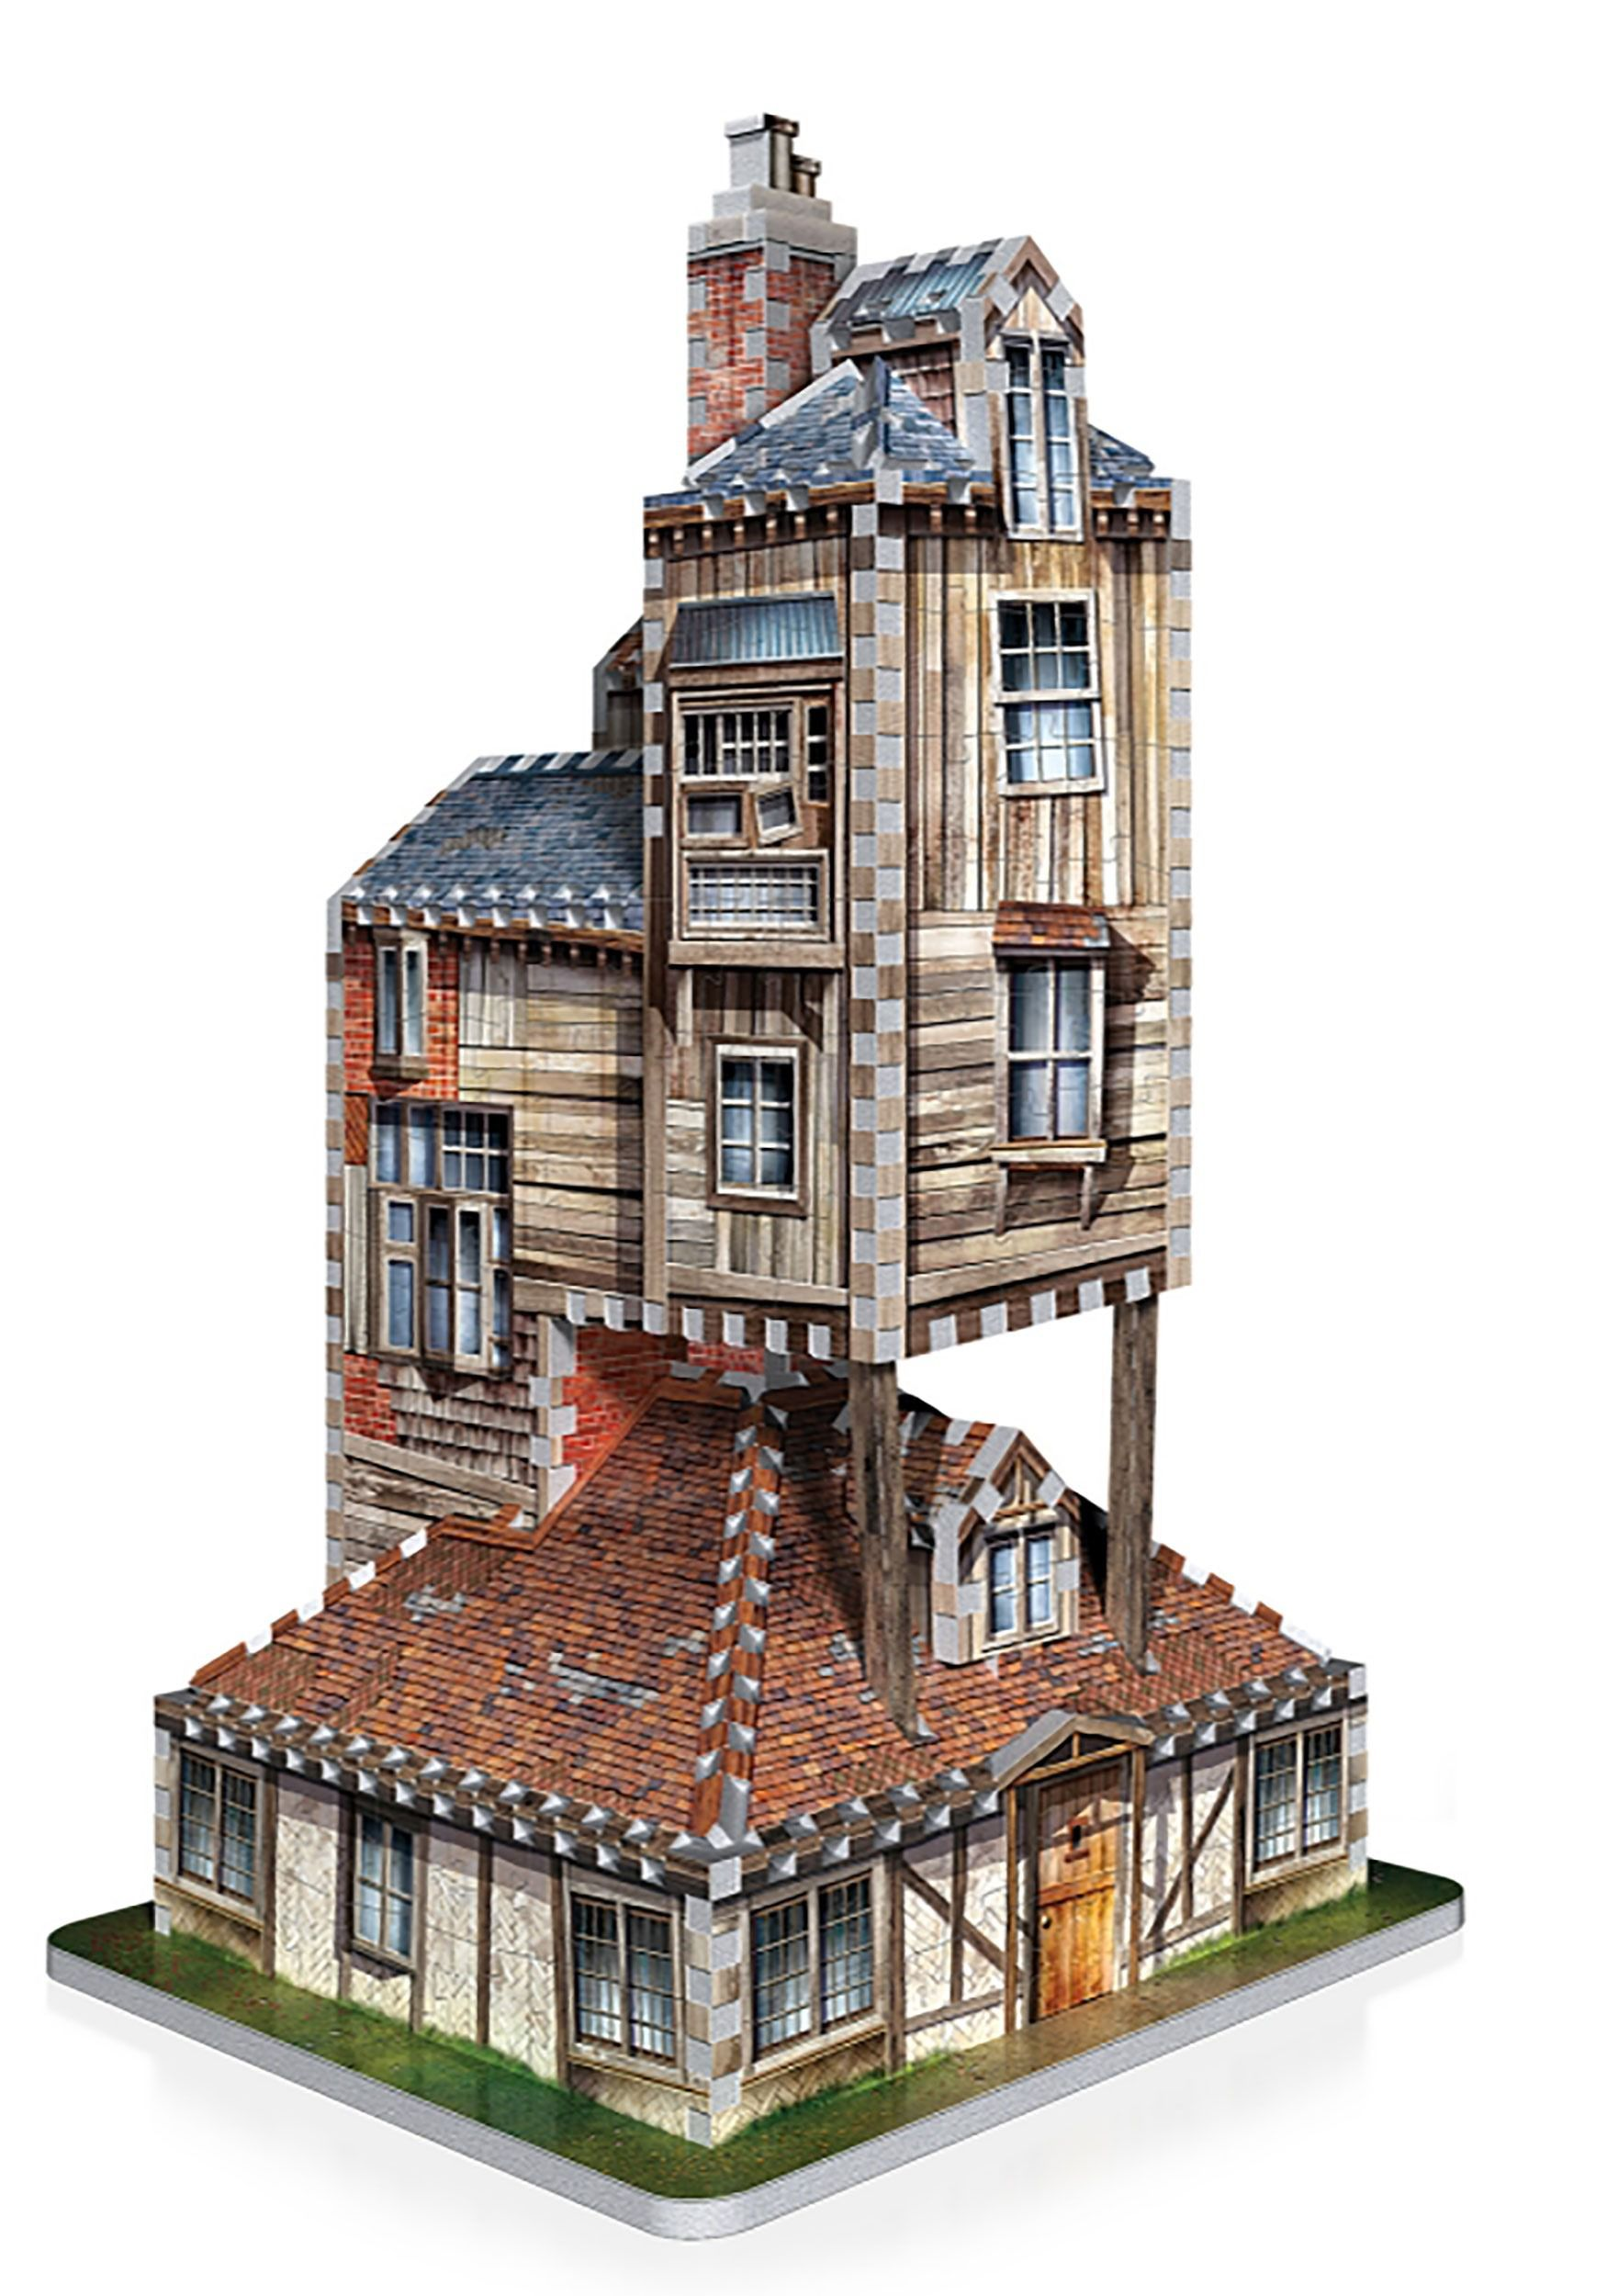 wrebbit-3d-puzzle-harry-potter-burrow-weasley-family-home